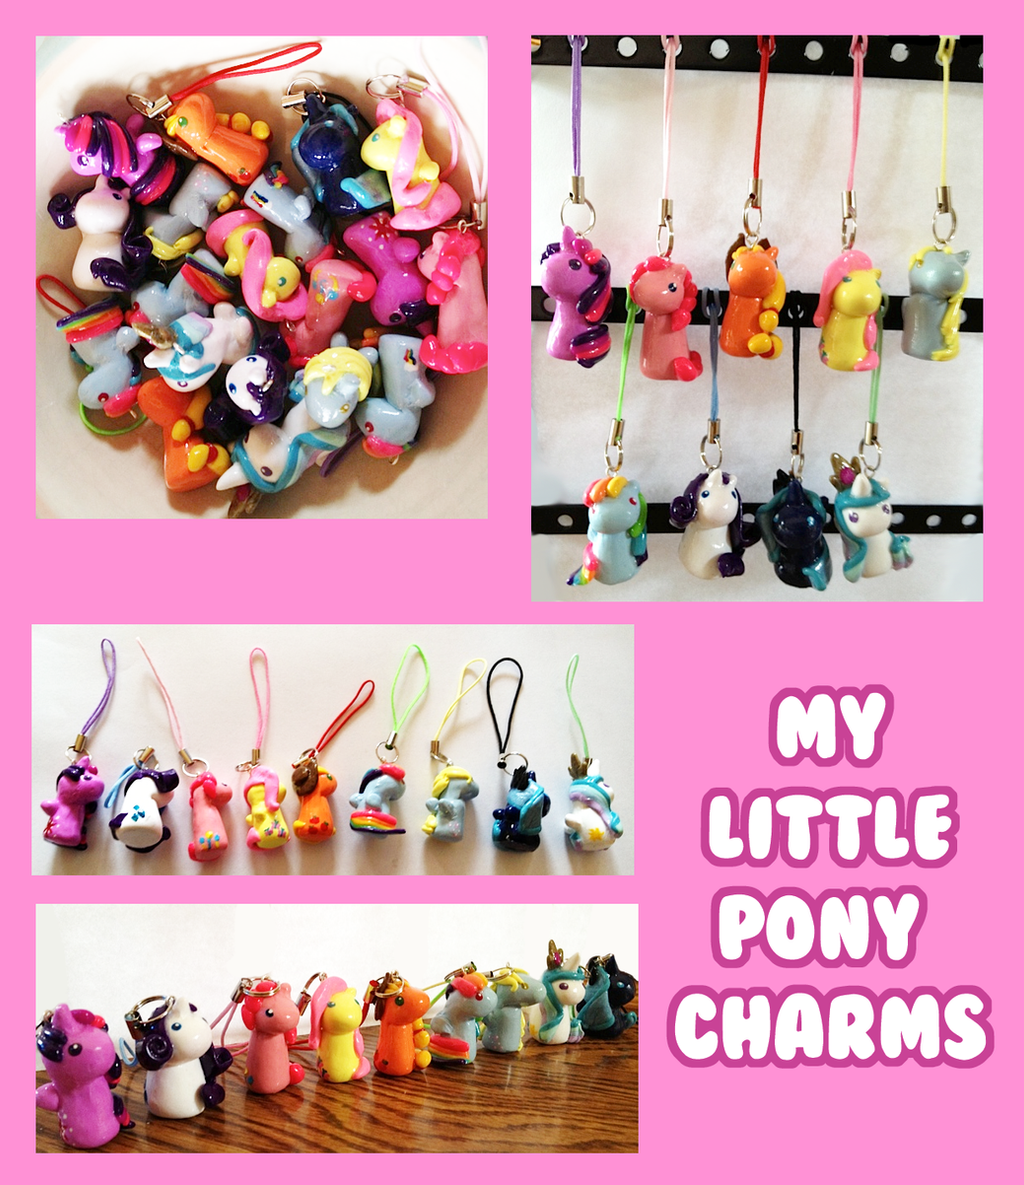 Charms charms and more charms by ideationox on deviantart my little pony miniature clay charms by icypanther1 mozeypictures Images